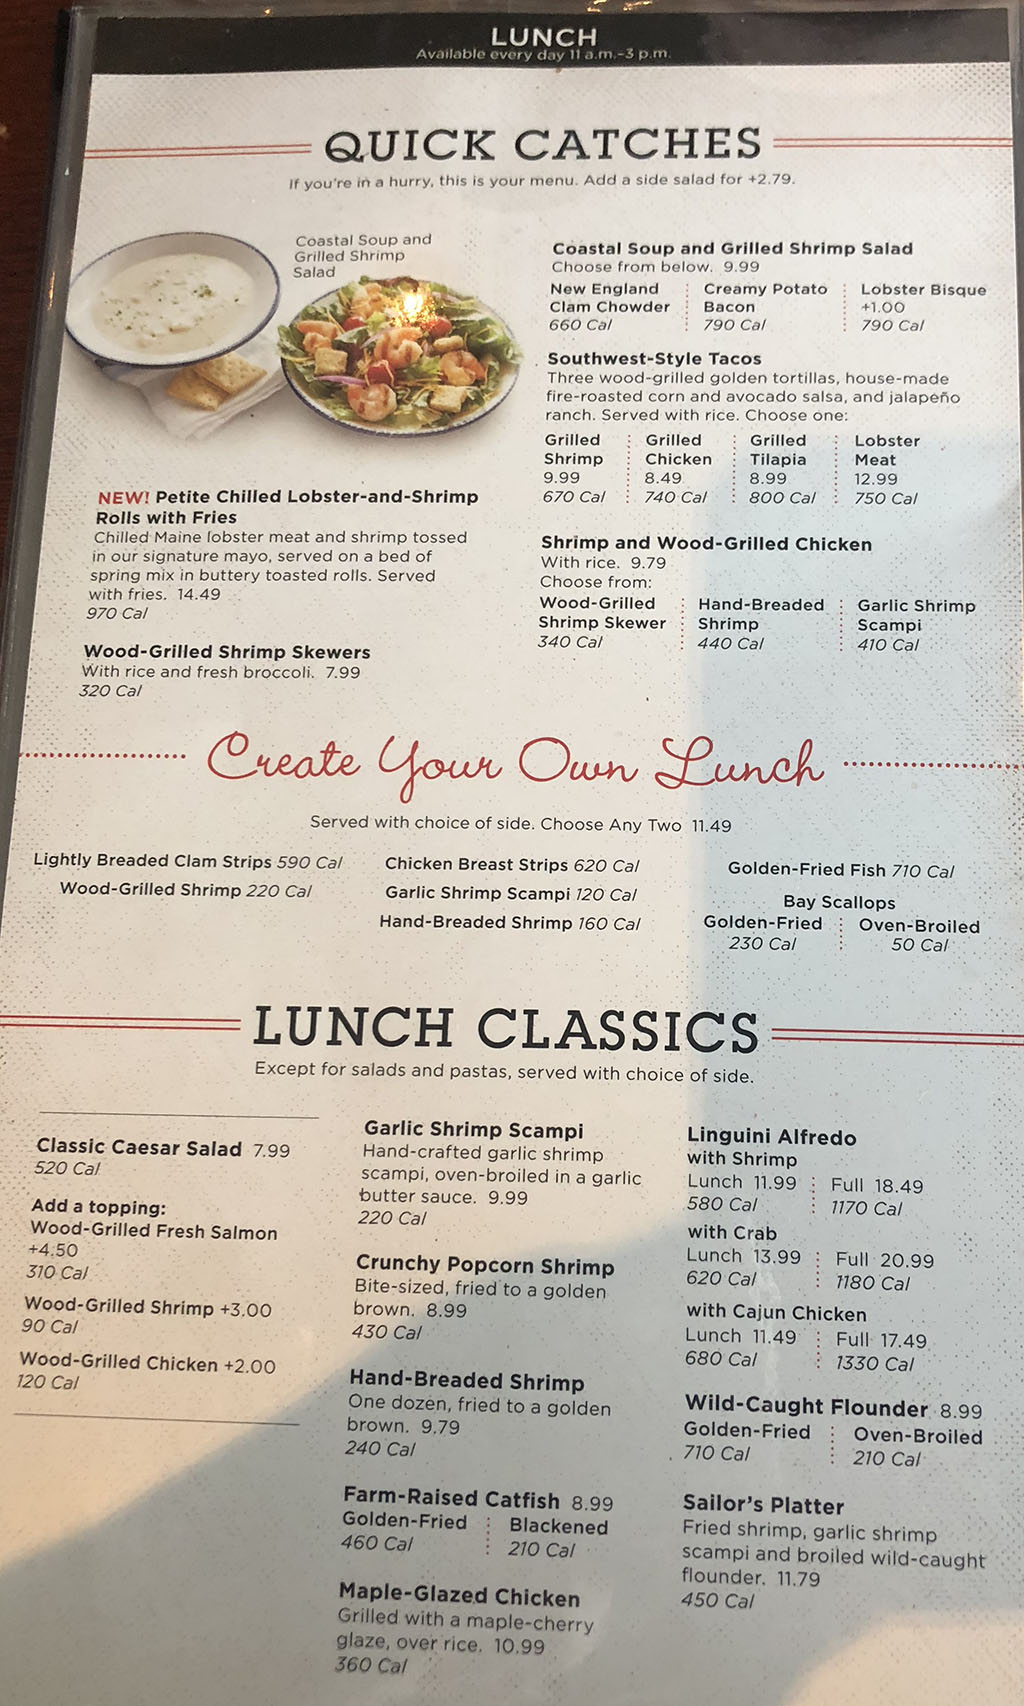 Red Lobster Menu With Prices Slc Menu